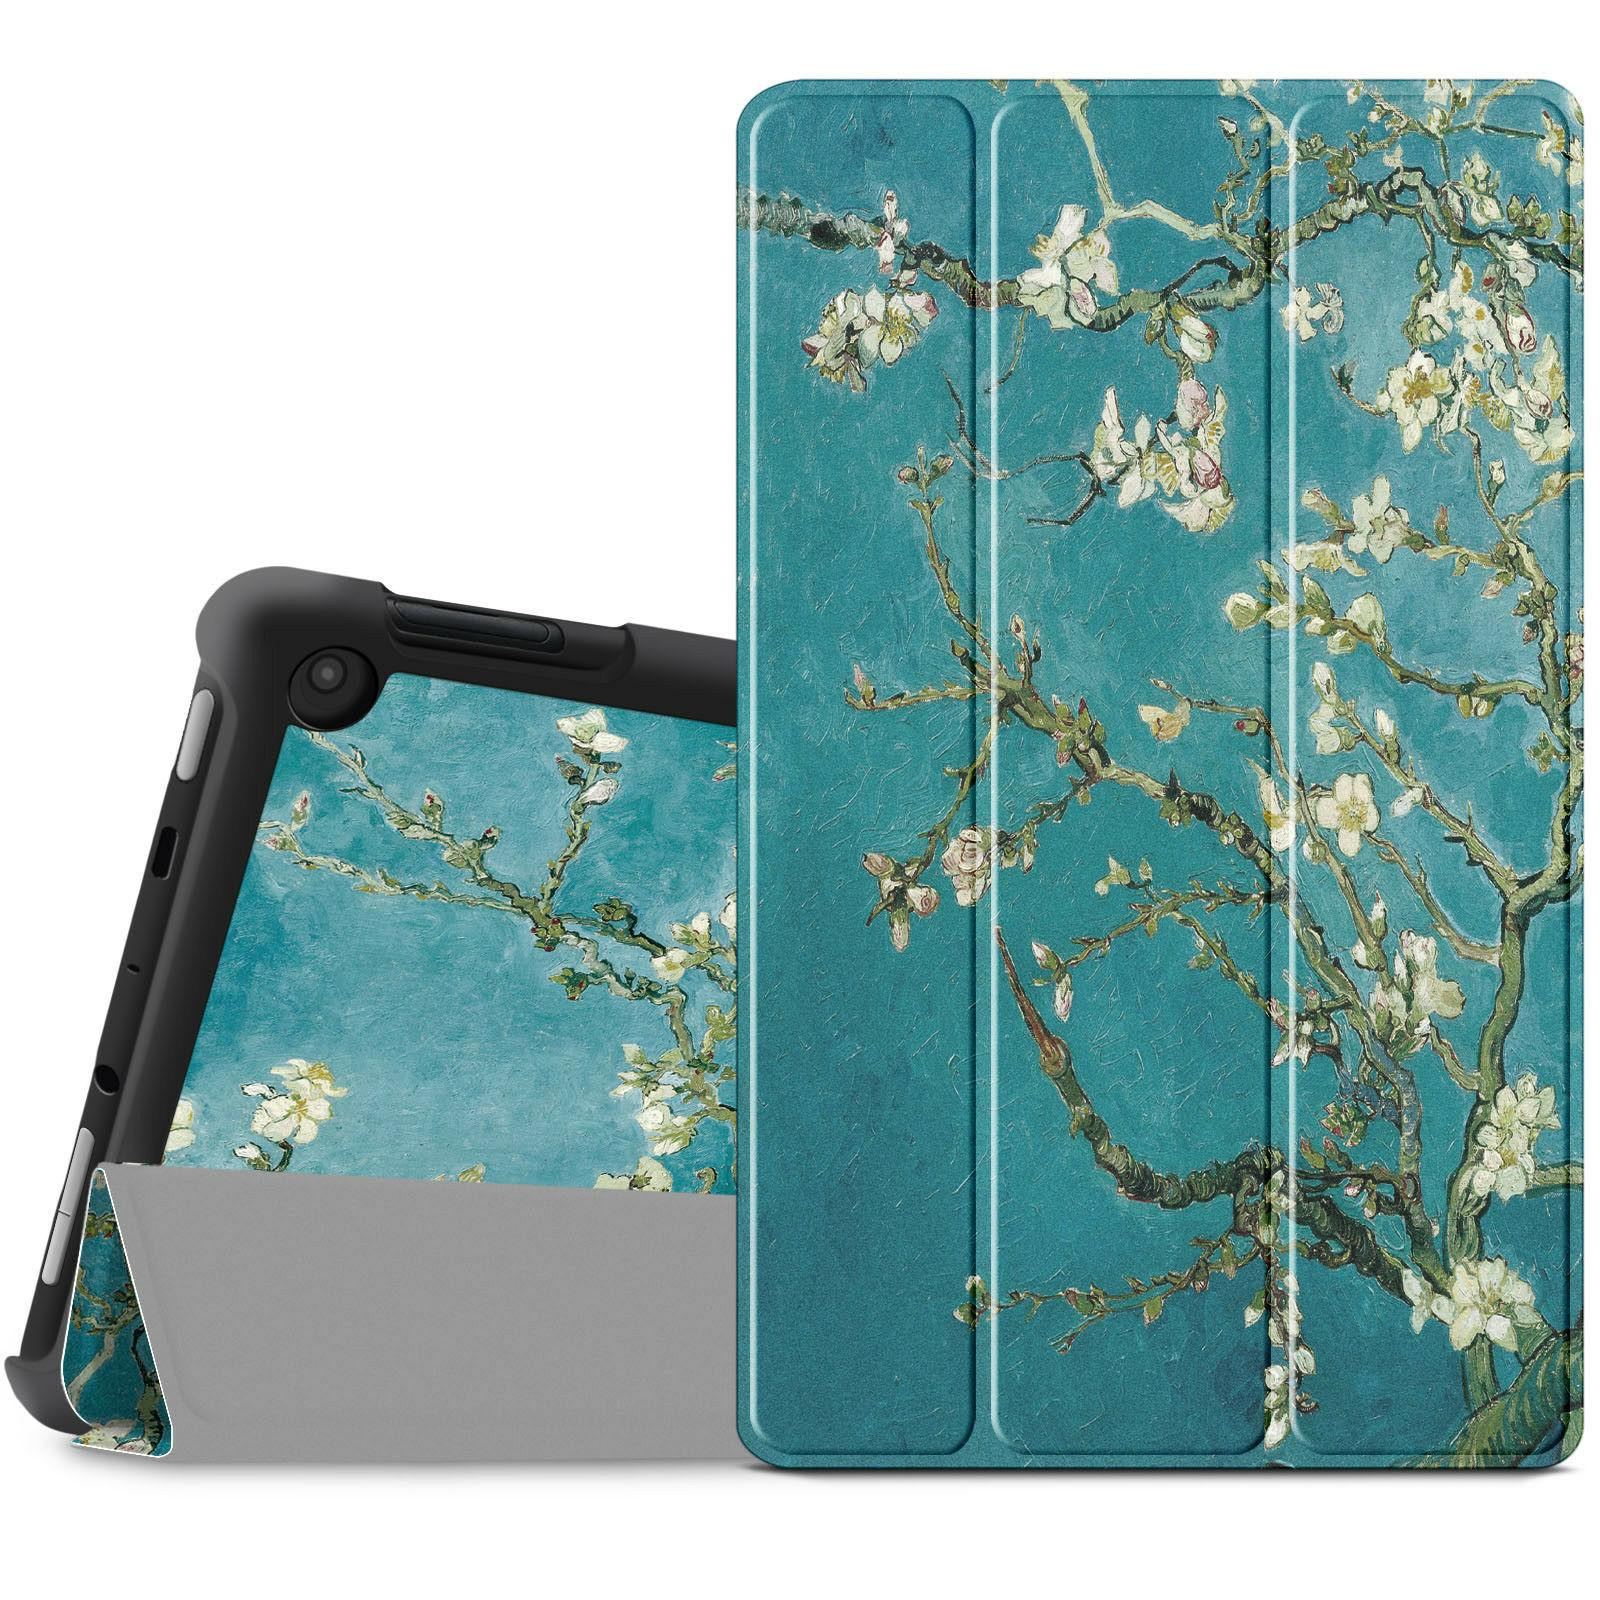 Infiland Tablet Case Cover For Amazon Fire HD 8 7th Gen 2017